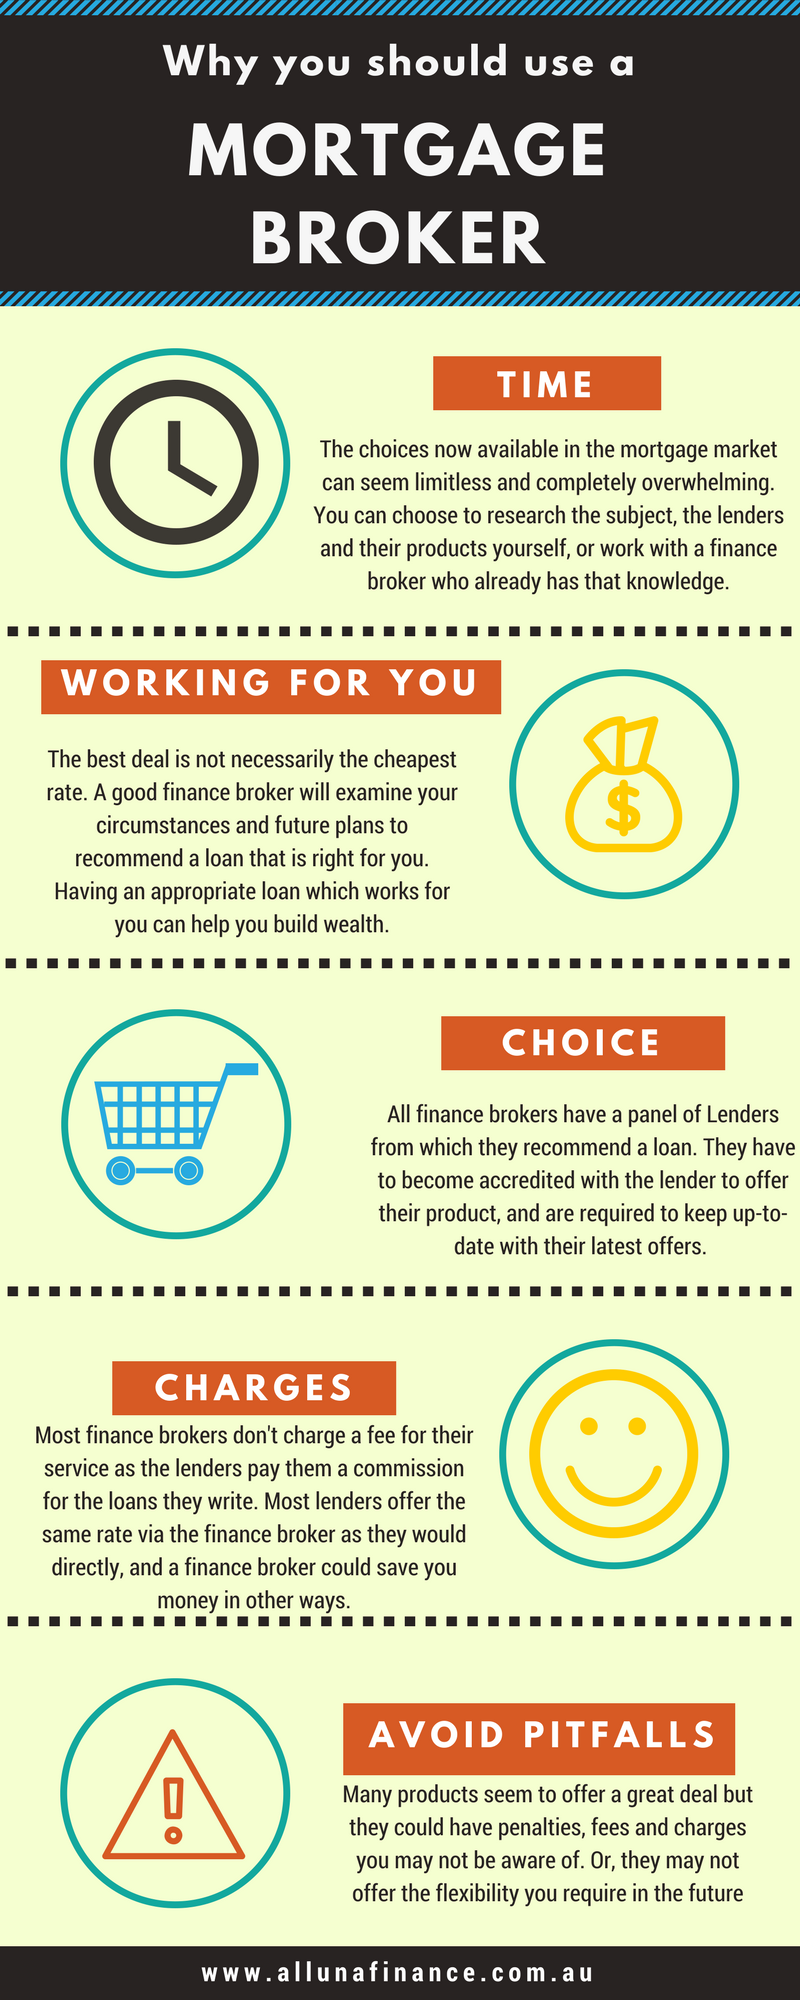 Why use a Mortgage broker infograpgic